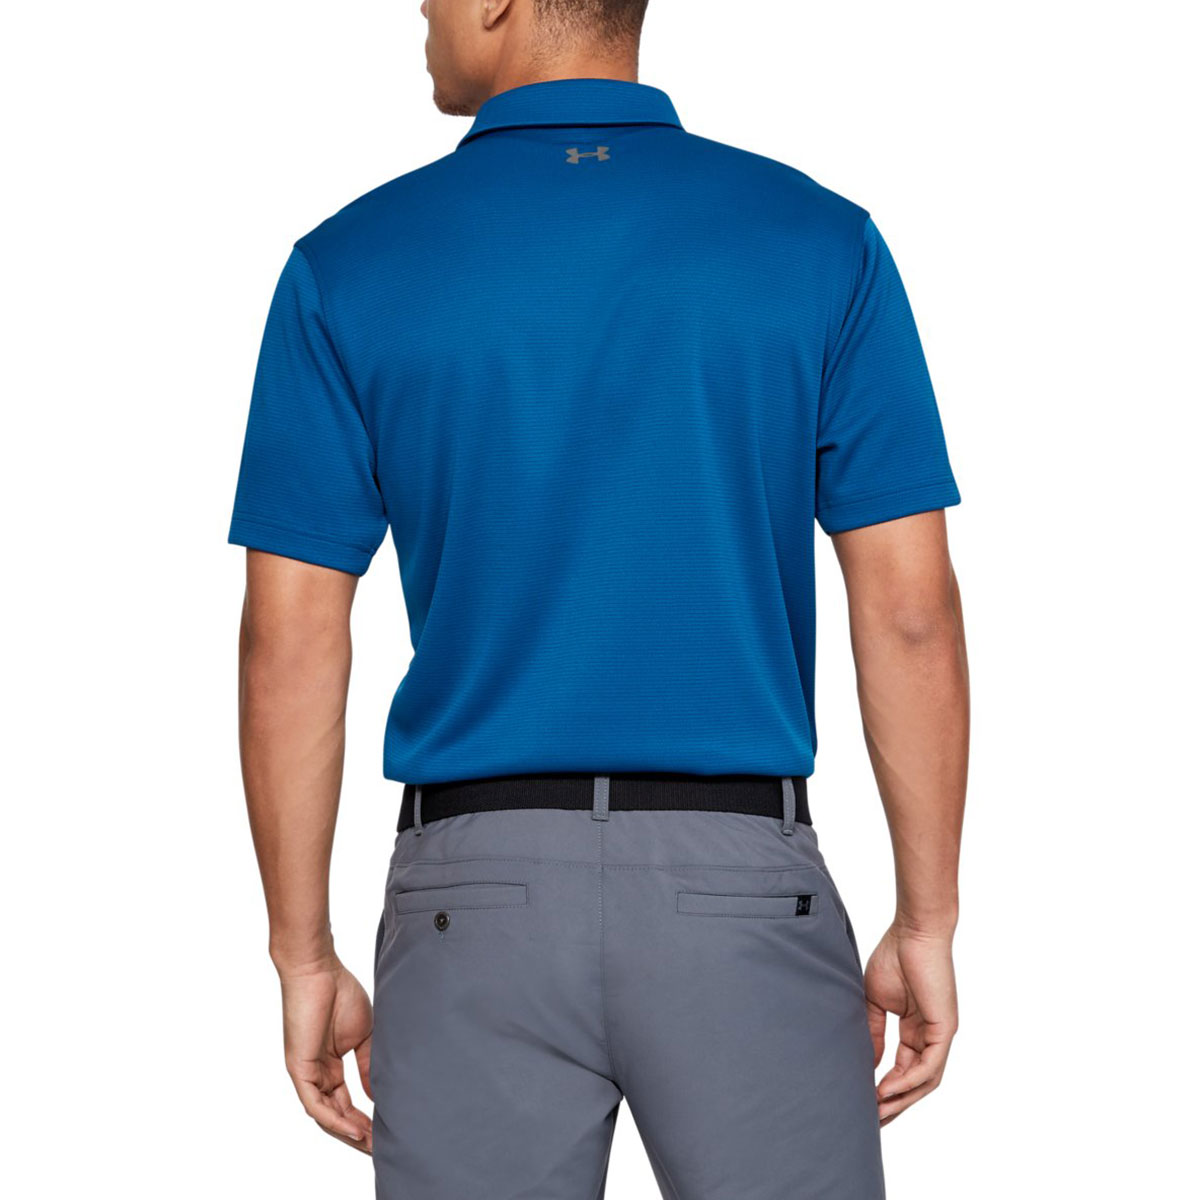 Under-Armour-Mens-2019-Golf-Tech-Wicking-Textured-Soft-Light-Polo-Shirt thumbnail 75